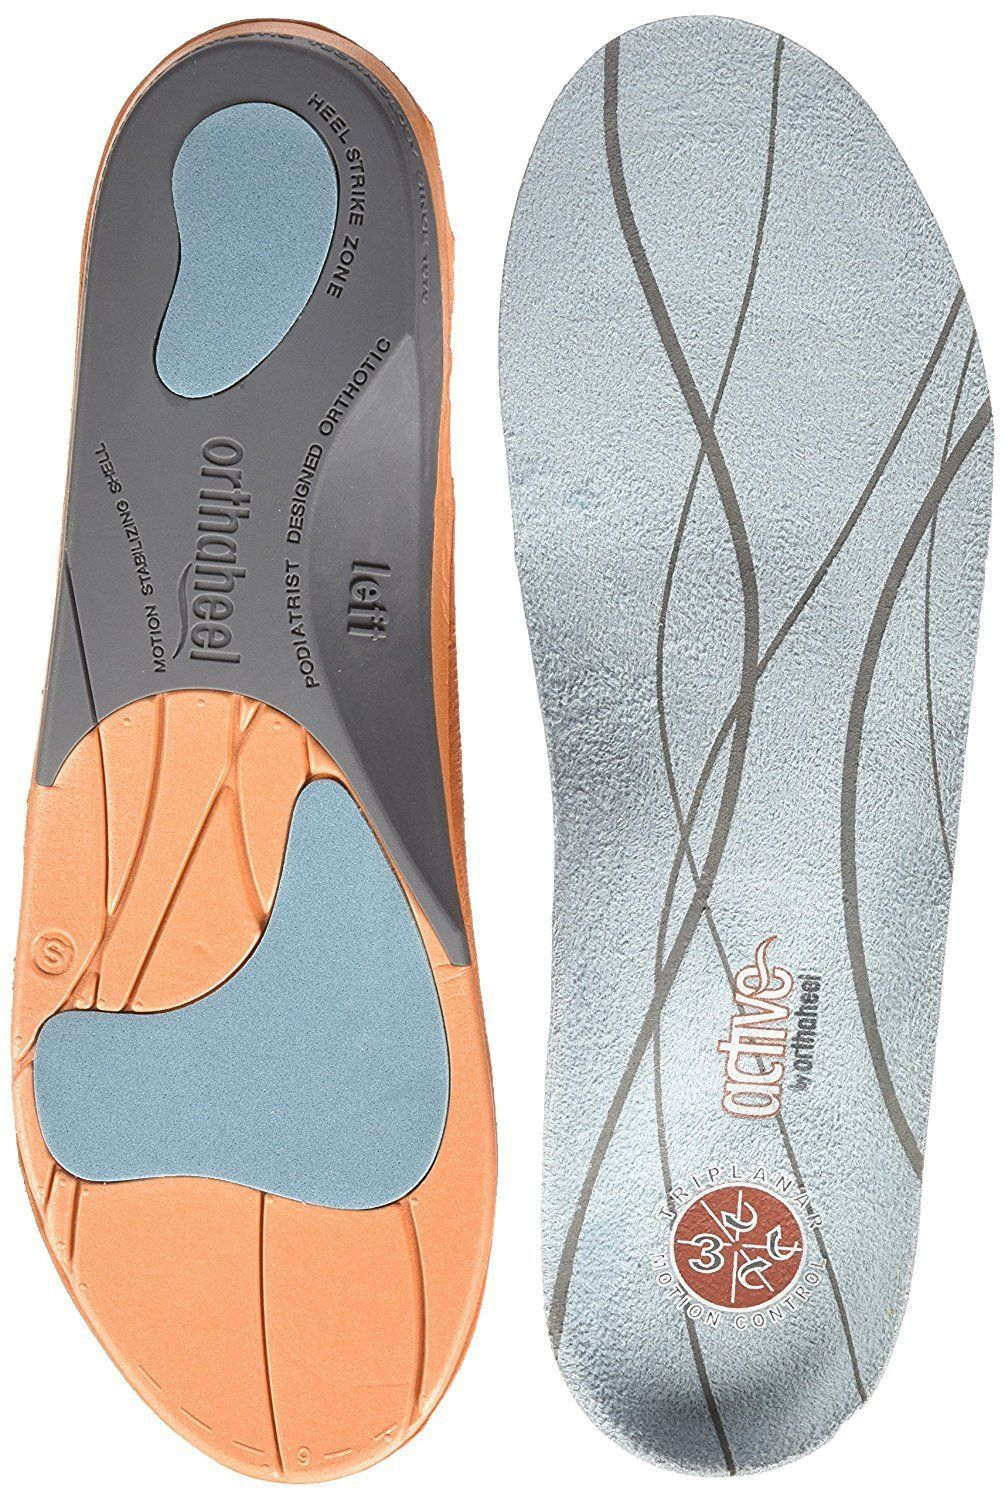 b5e27ab56994 Shoe Insoles 169284  New Orthaheel Relief Full Length Orthotic Insole Small  Mans 5.5-7 Womans 6.5-8 -  BUY IT NOW ONLY   34.04 on eBay!